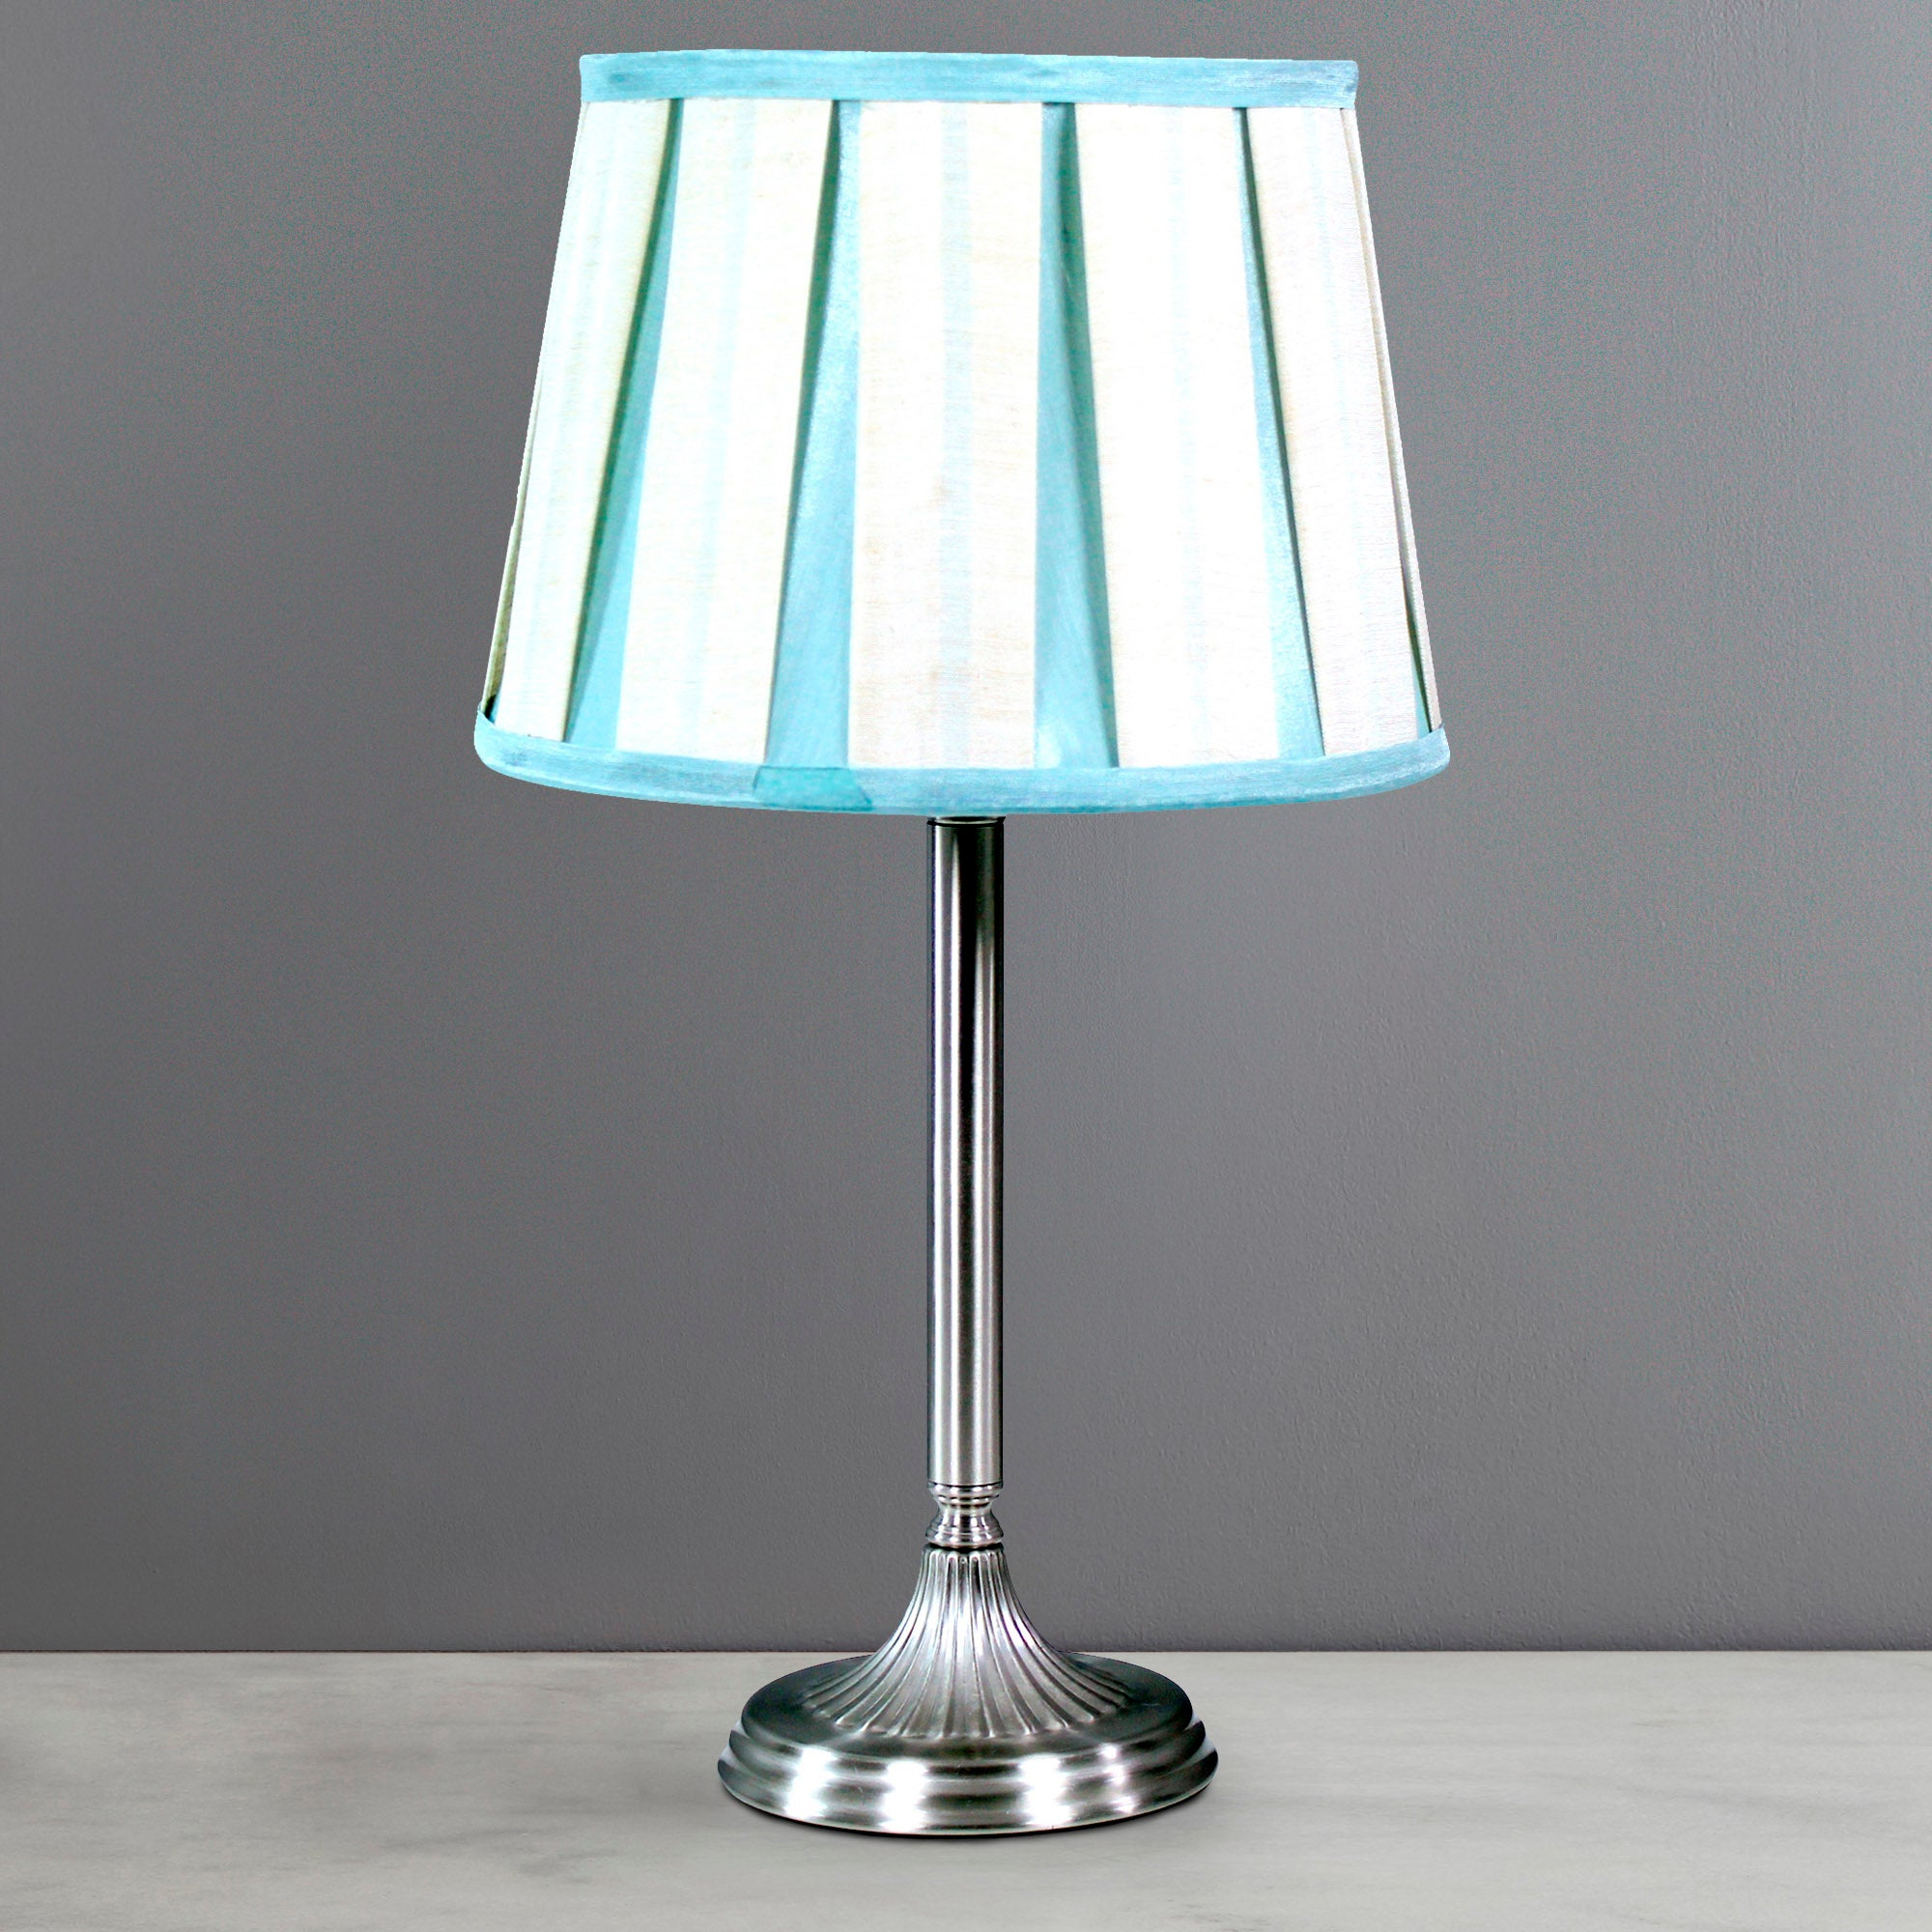 Chelsea Pleat Table Lamp